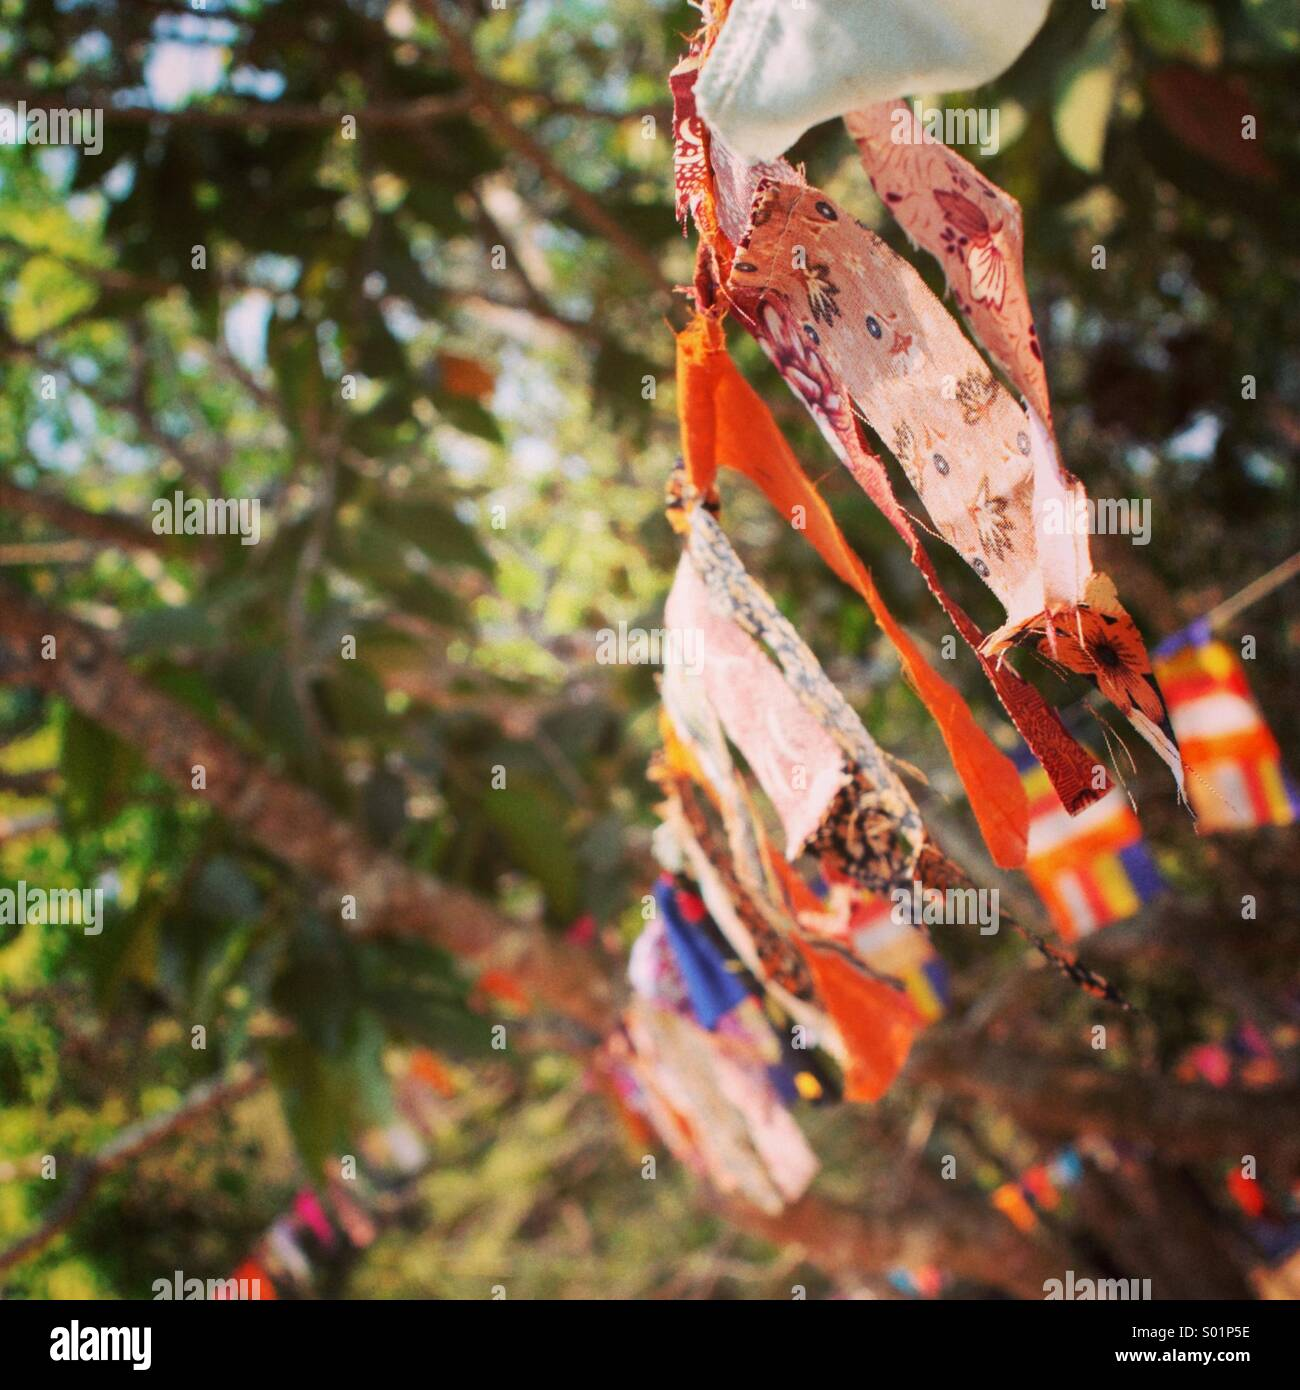 Buddhist prayer flags against a green tree background in Cambodia - Stock Image